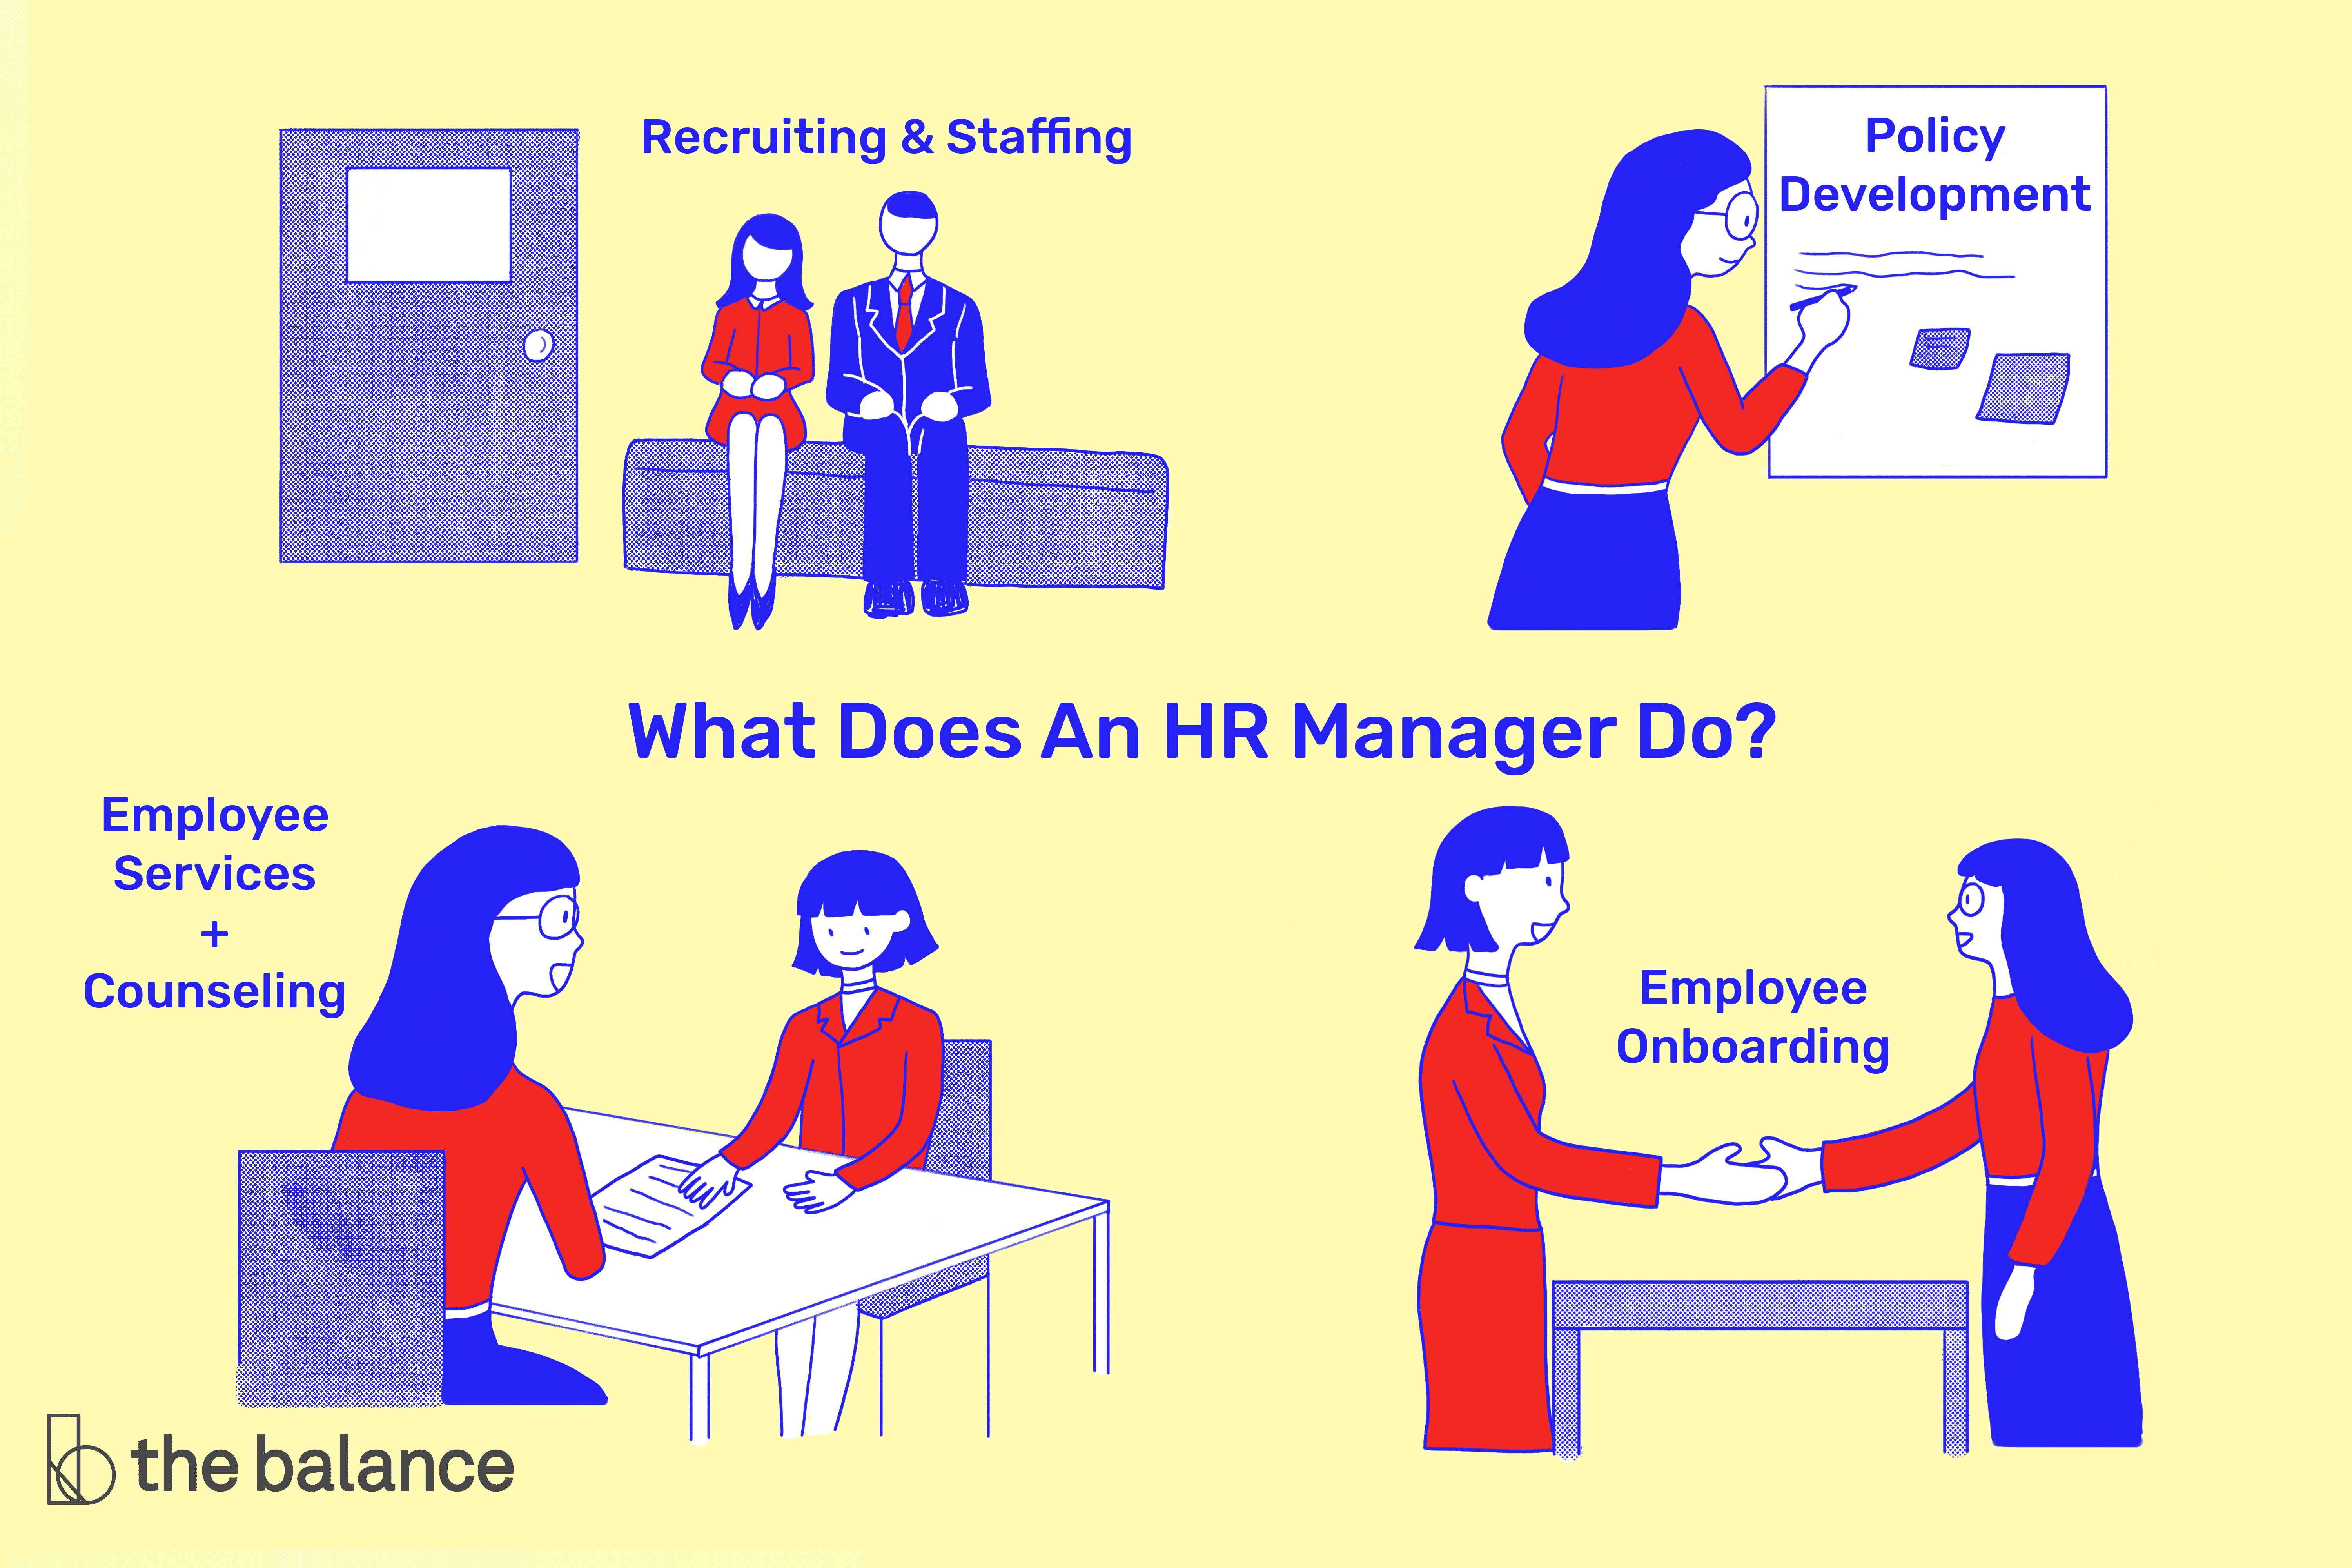 The Human Resources Manager Guides And Manages The Overall Provision Of Human Resources Services Policies Hr Management Human Resources Sales Job Description